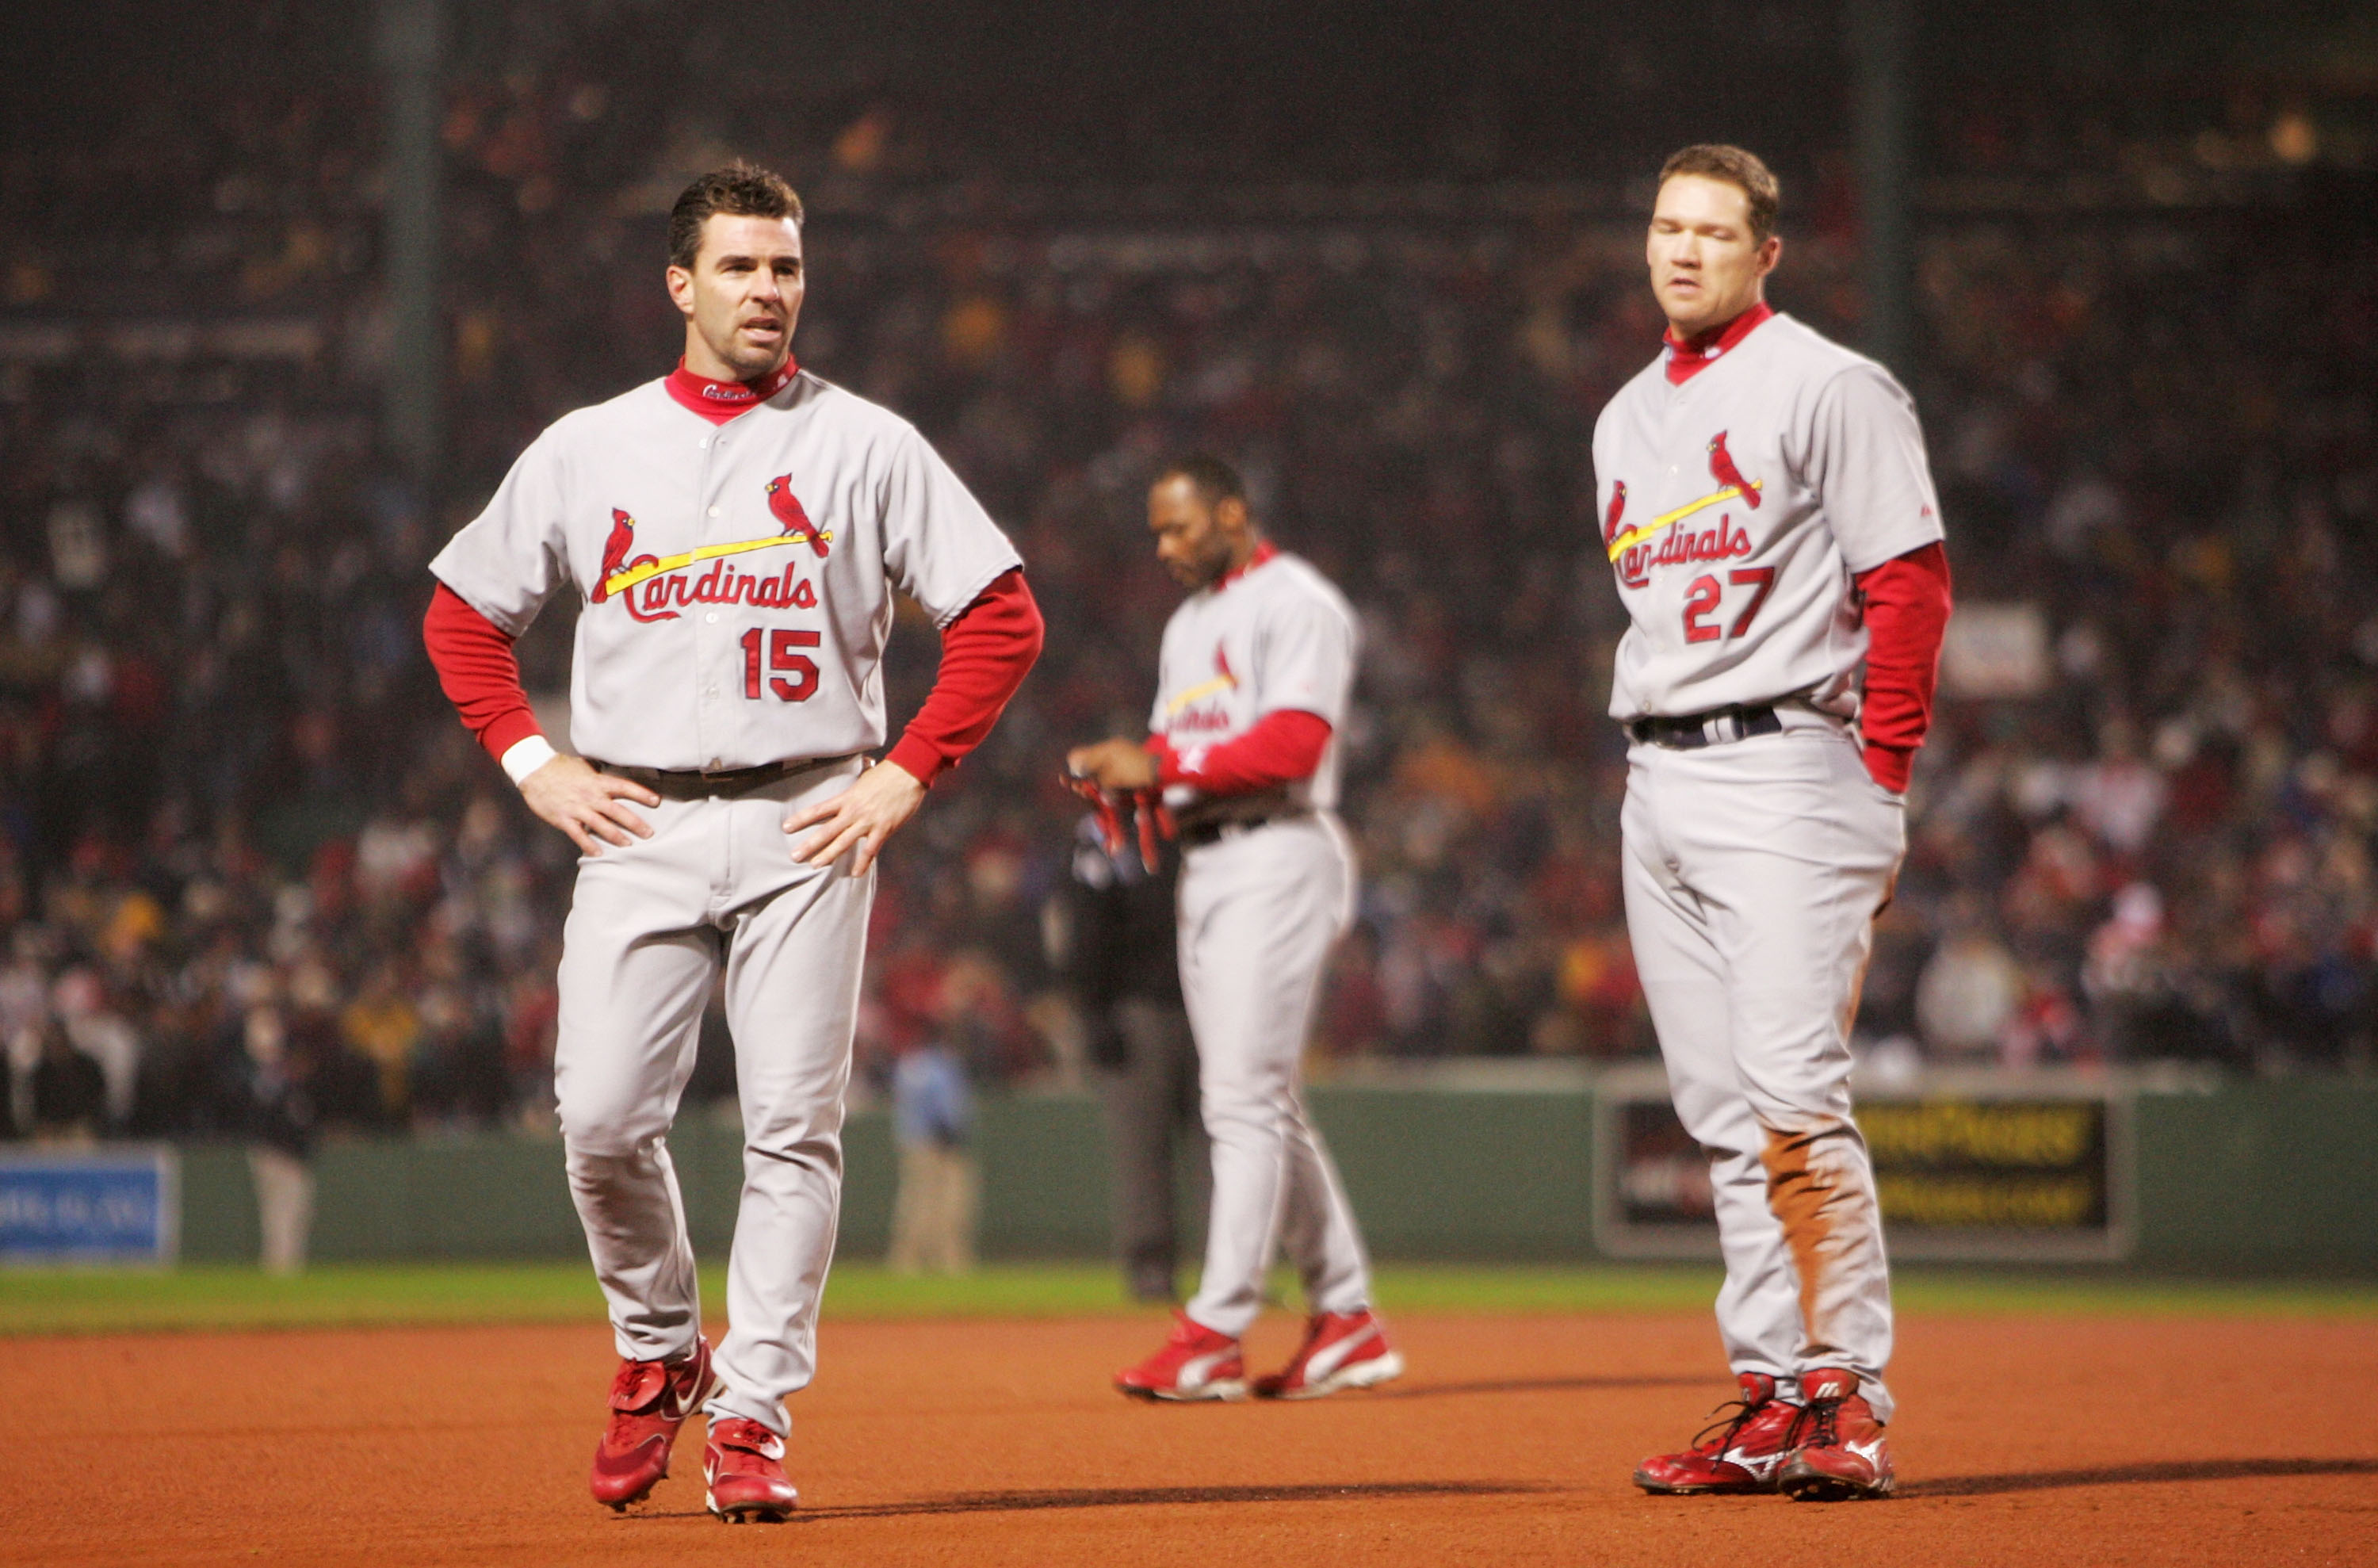 BOSTON - OCTOBER 24:  (L-R) Jim Edmonds #15, Reggie Sanders #16 and Scott Rolen #27 of the St. Louis Cardinals react after the end of the top of the sixth inning against the Boston Red Sox during game two of the World Series on October 24, 2004 at Fenway